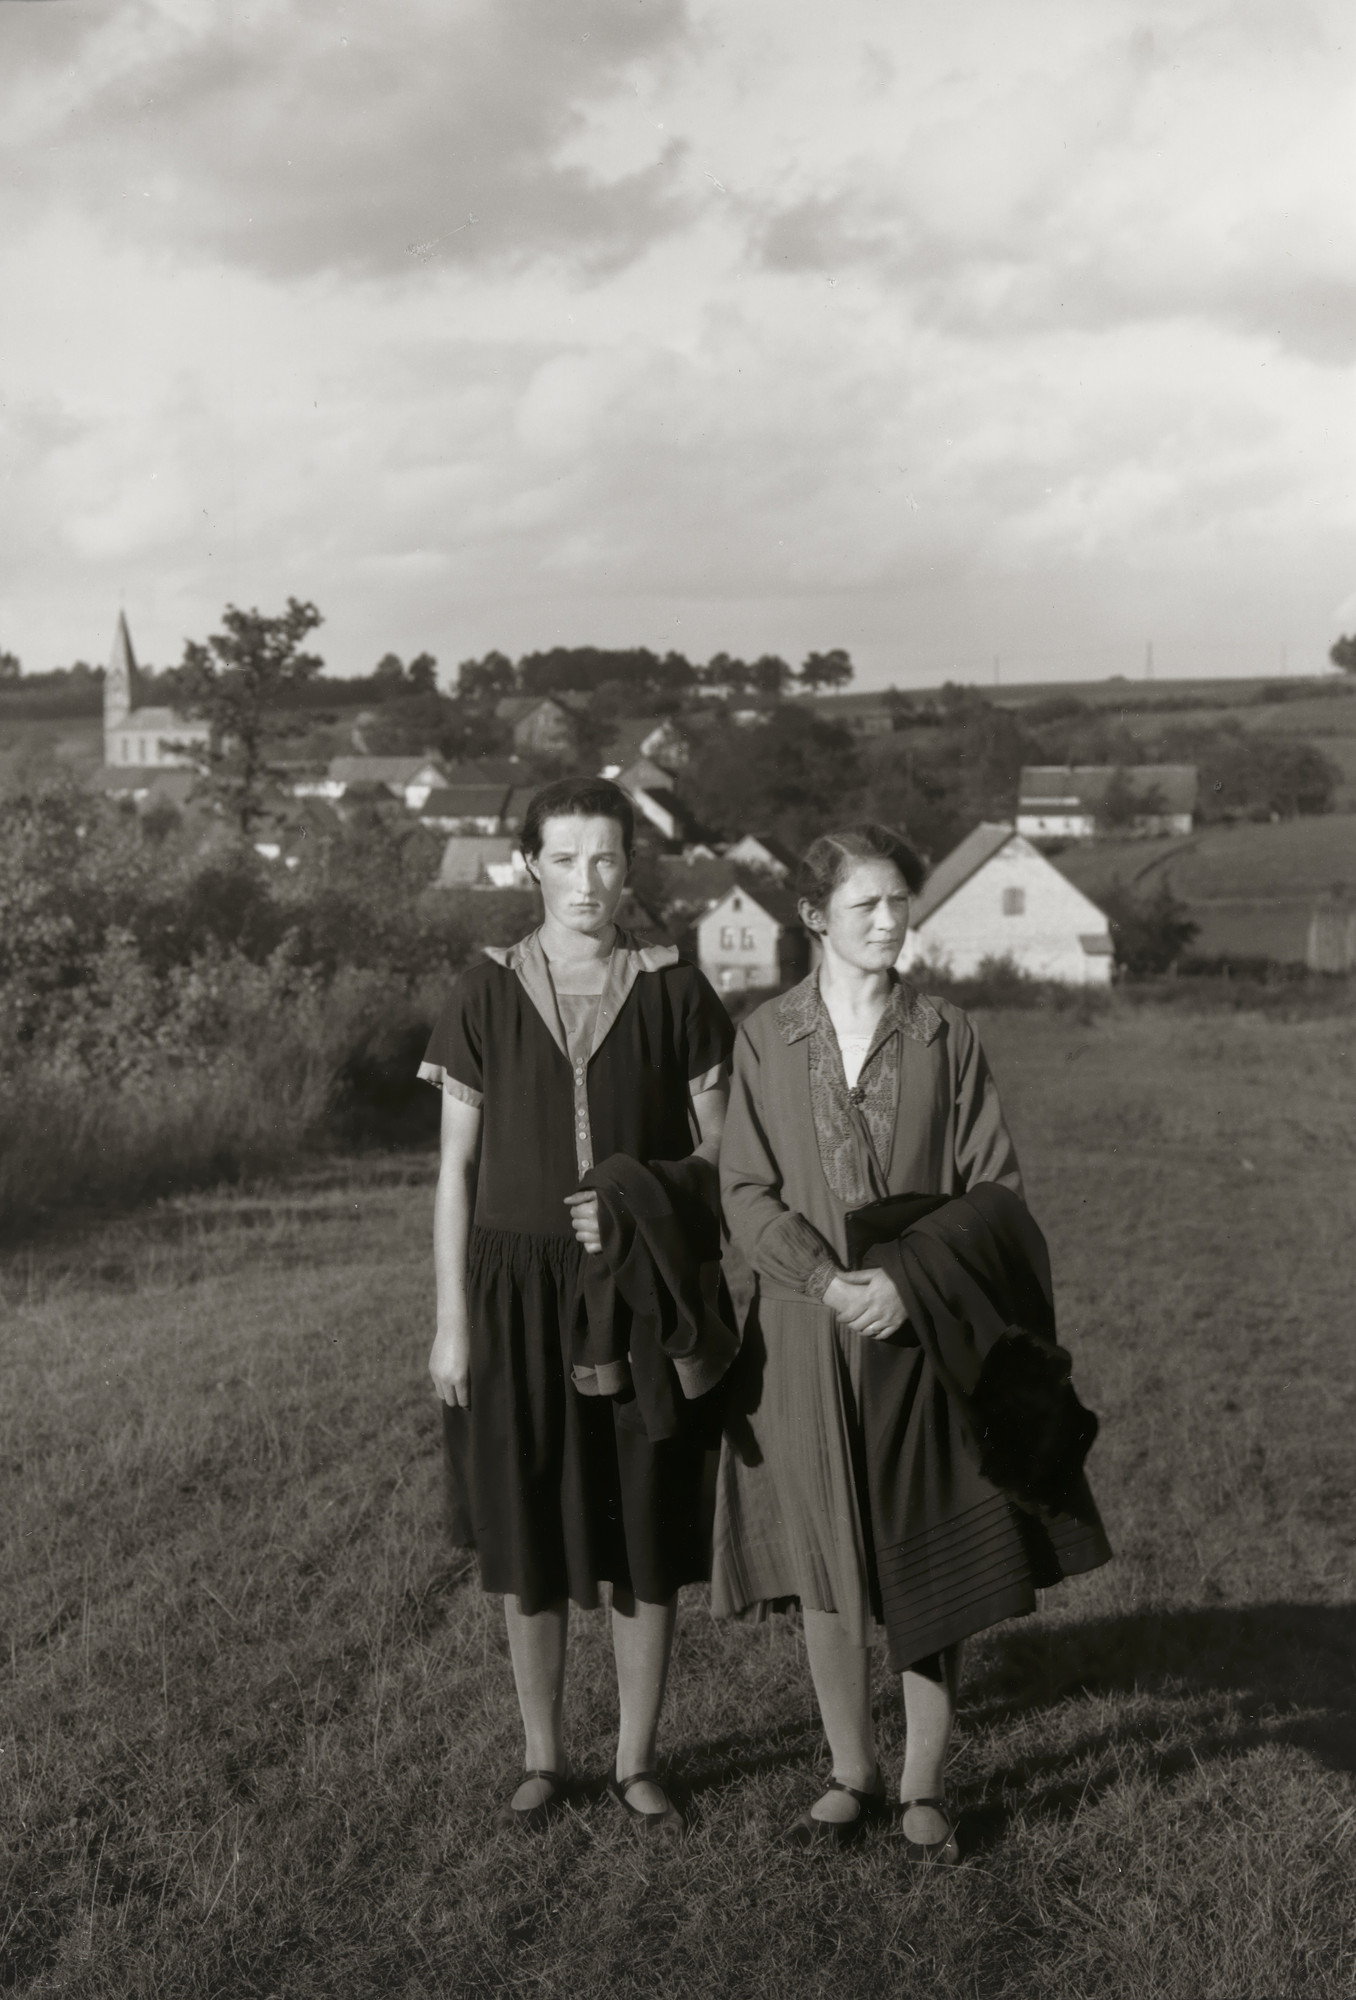 August Sander. Farm Girls from the Westerwald. 1927